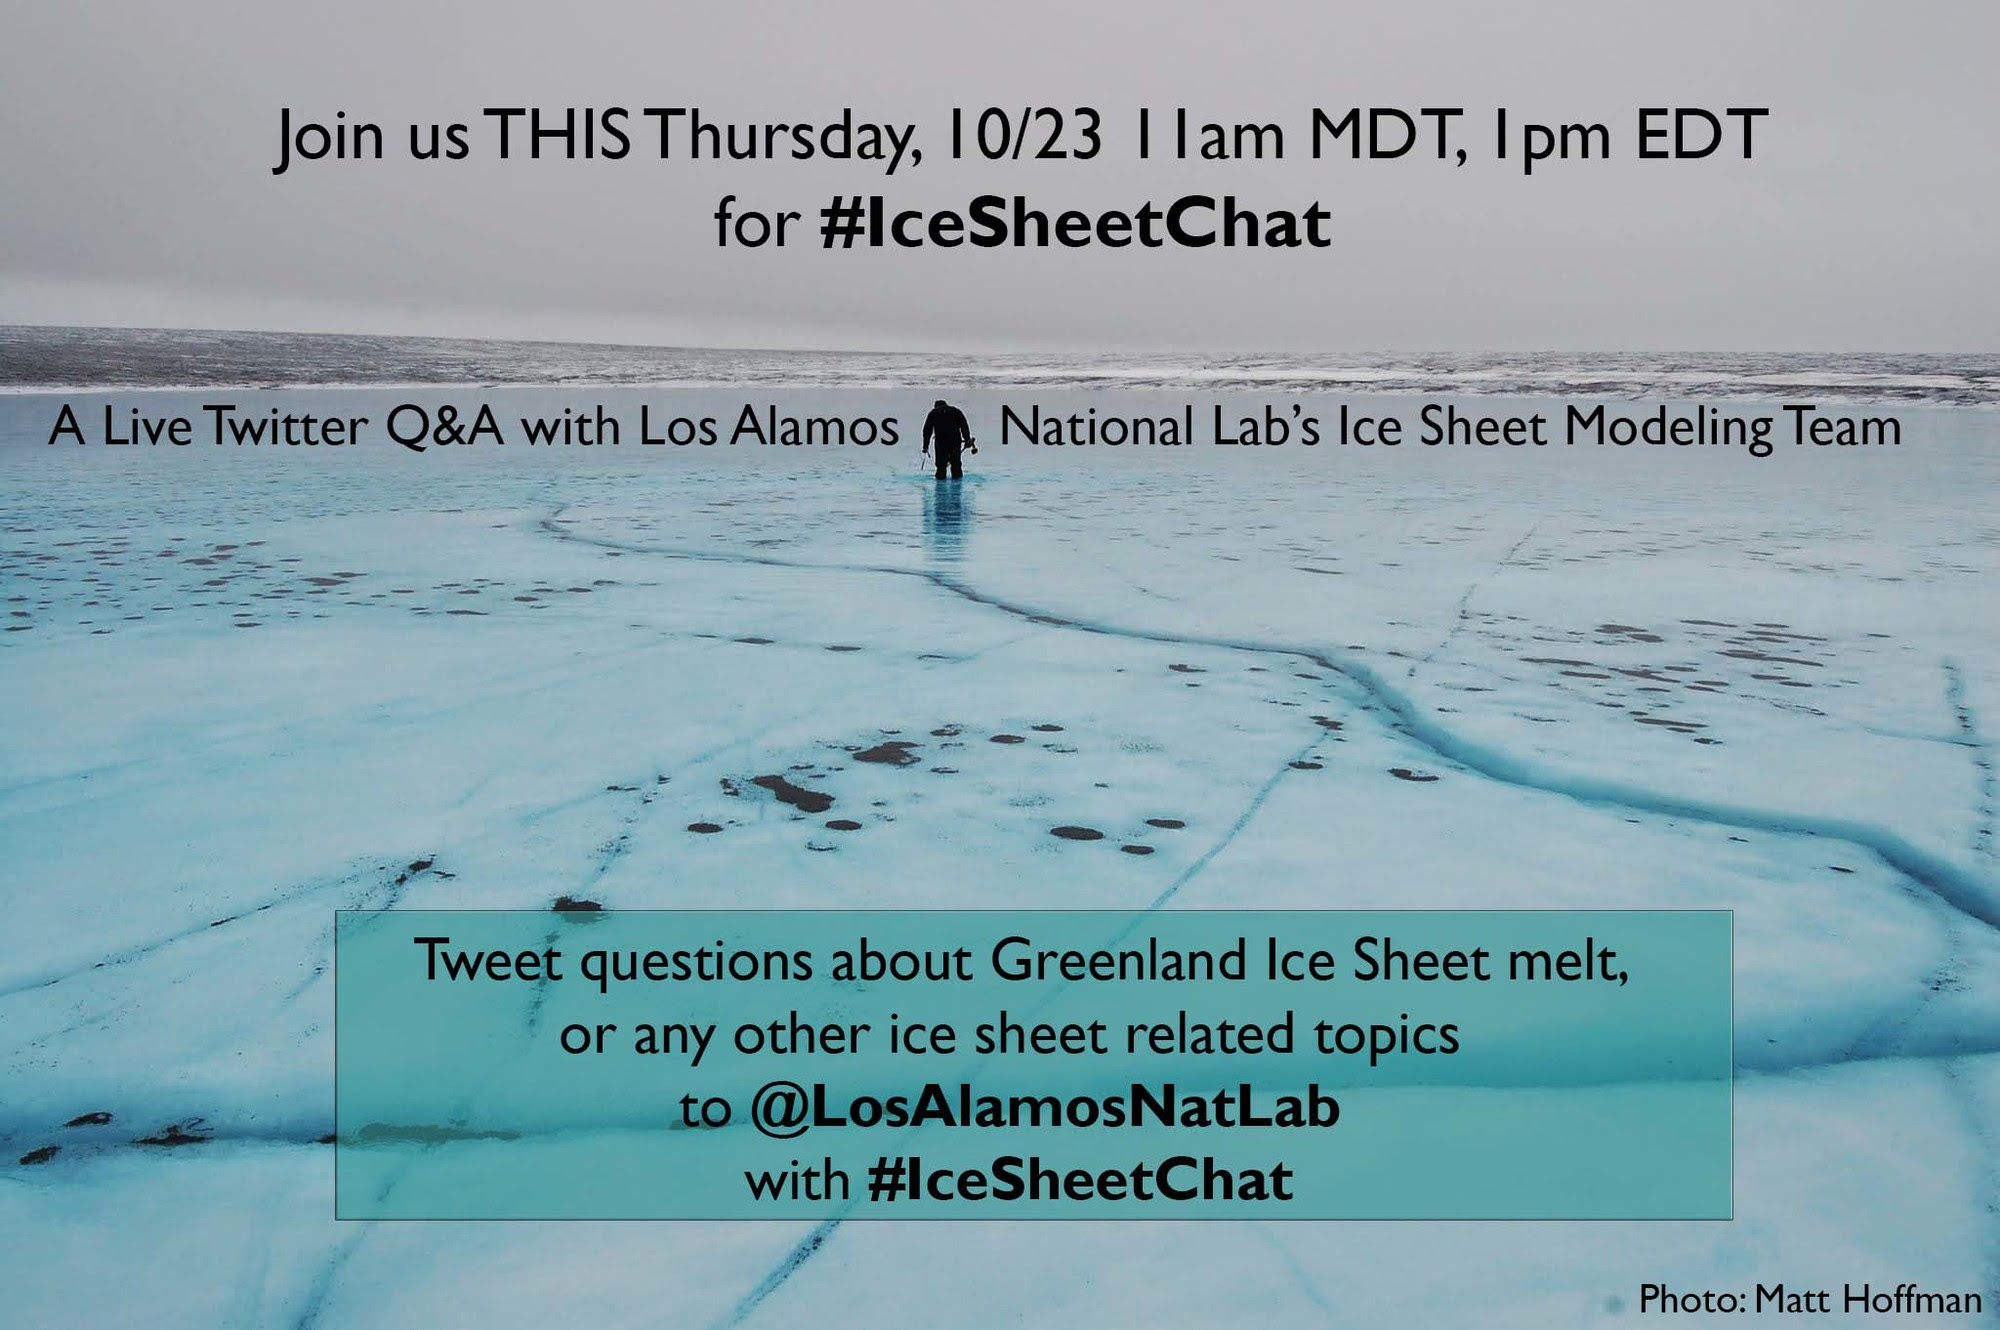 #IceSheetChat